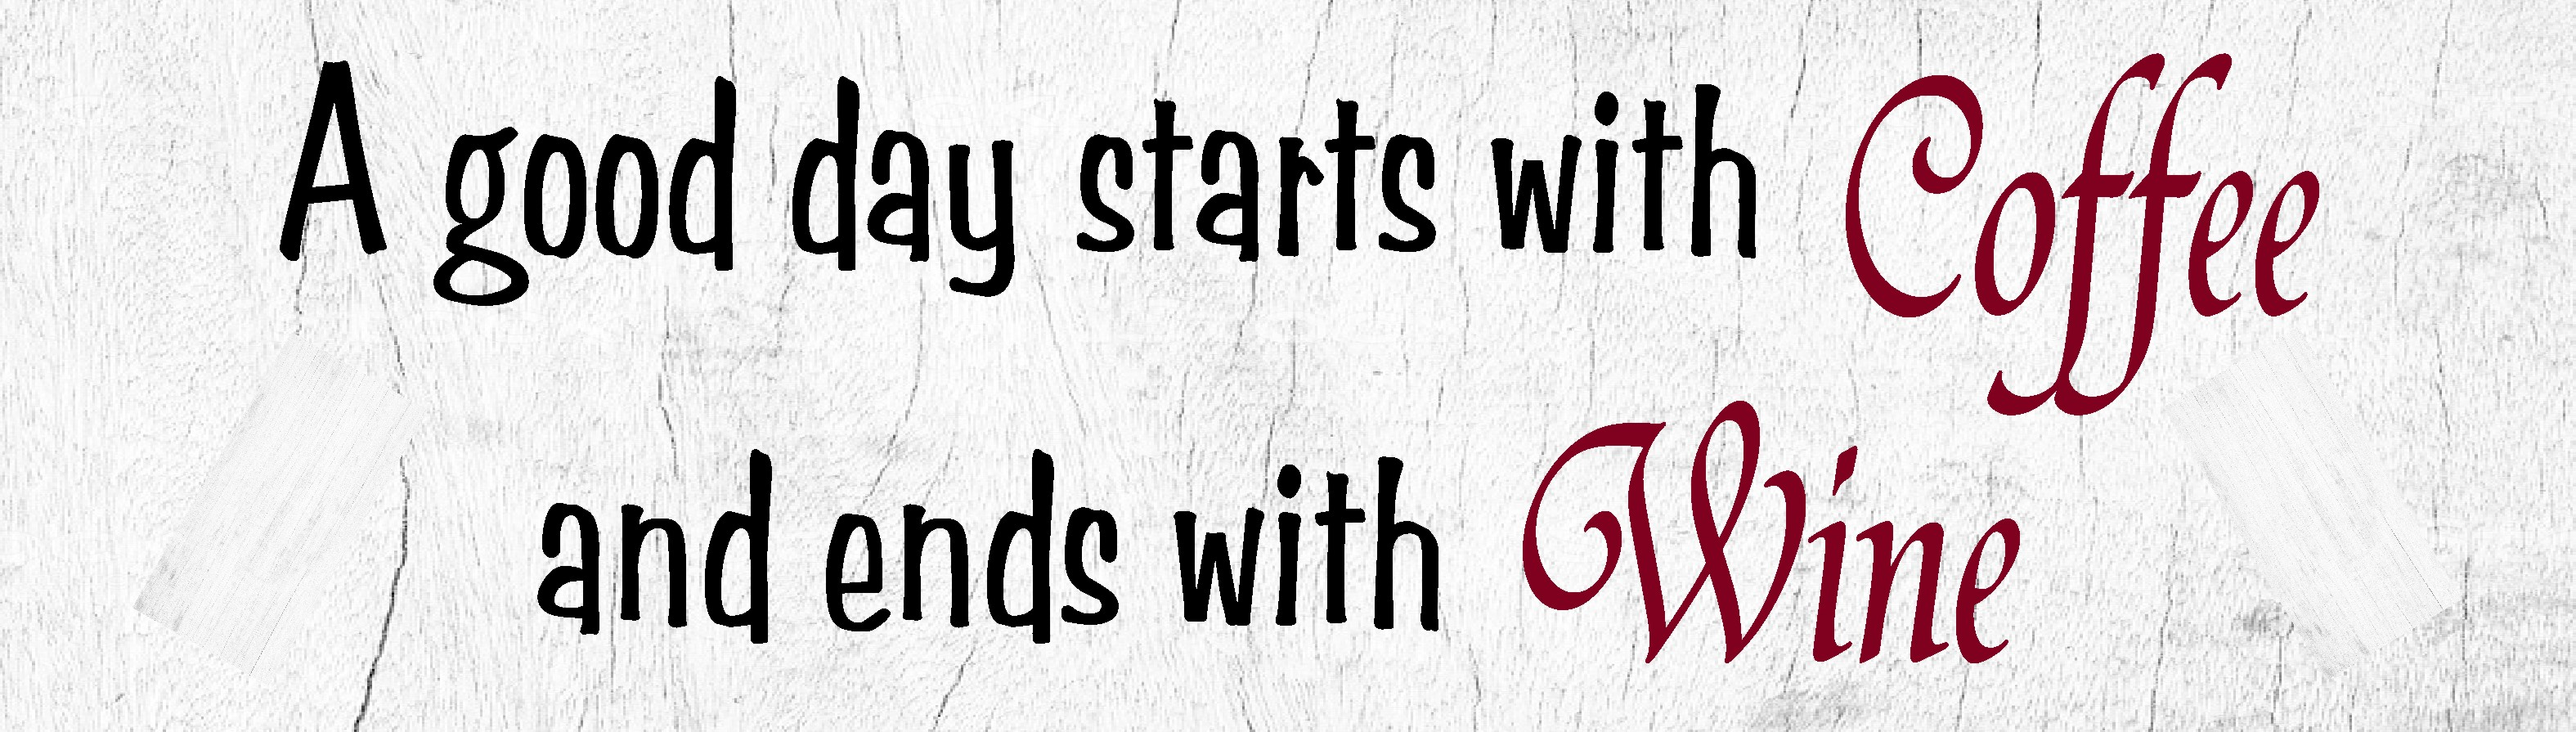 """A GOOD DAY STARTS WITH COFFEE AND ENDS WITH WINE 10.5' X 3"""" WOODEN BLOCK SIGN"""